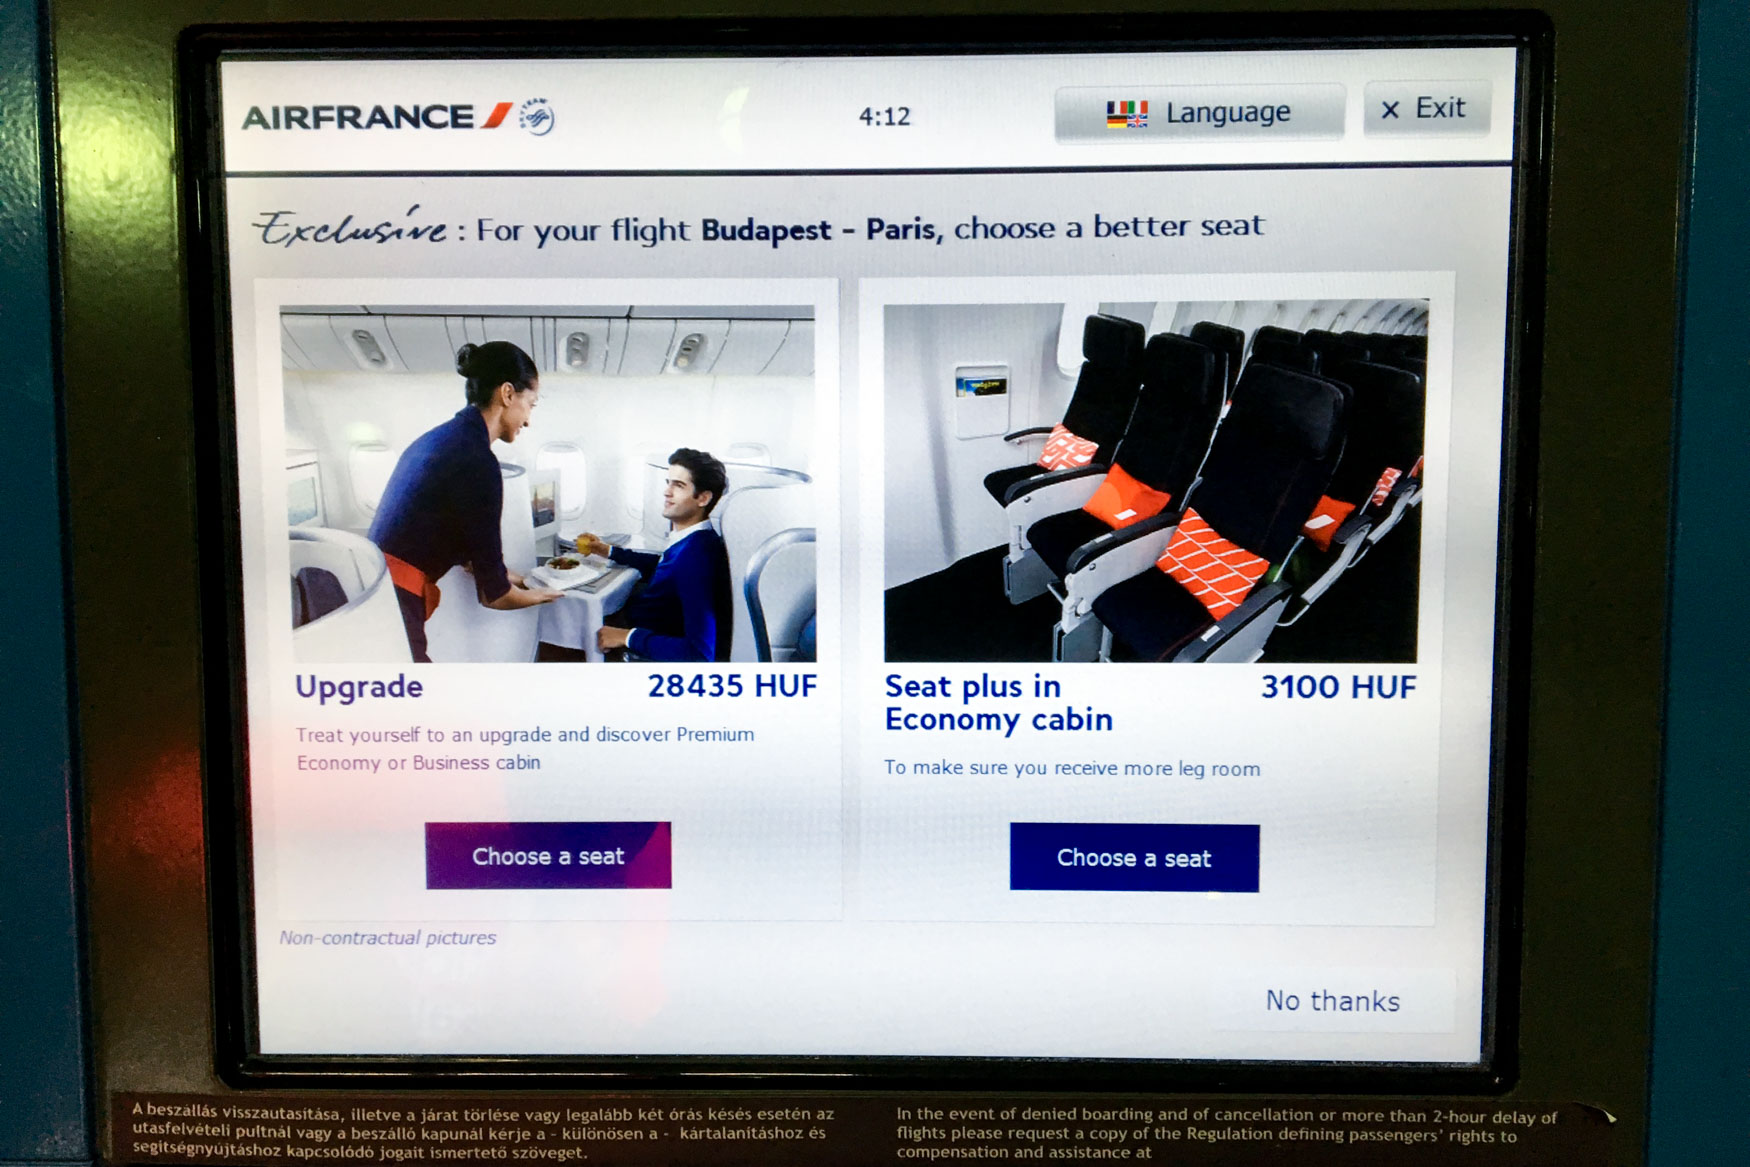 Air France Upgrade Offer